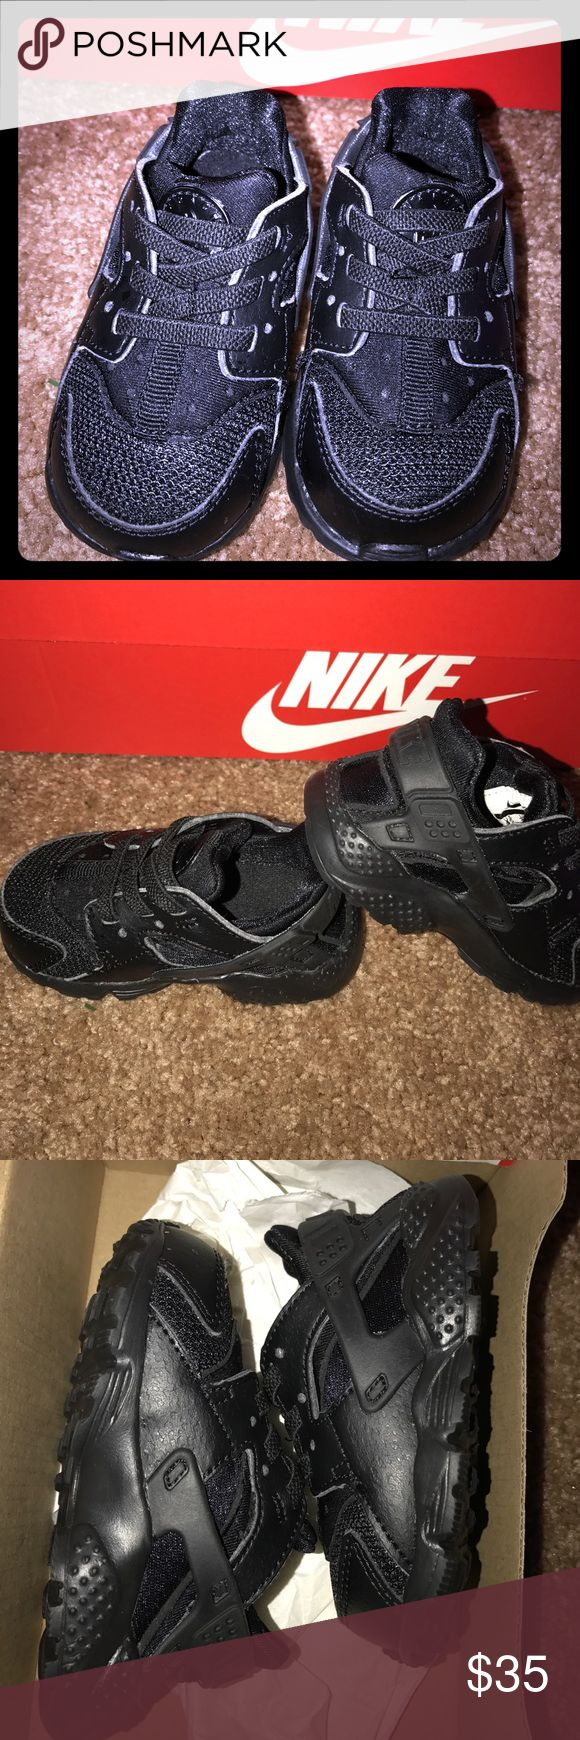 Toddler Huarache Run Nike shoe Size: 4  Color: Black  Condition: 9   My daughter wore these shoes maybe 3 times I absolutely love them that can go with anything but she's growing so fast. Nike Shoes Sneakers